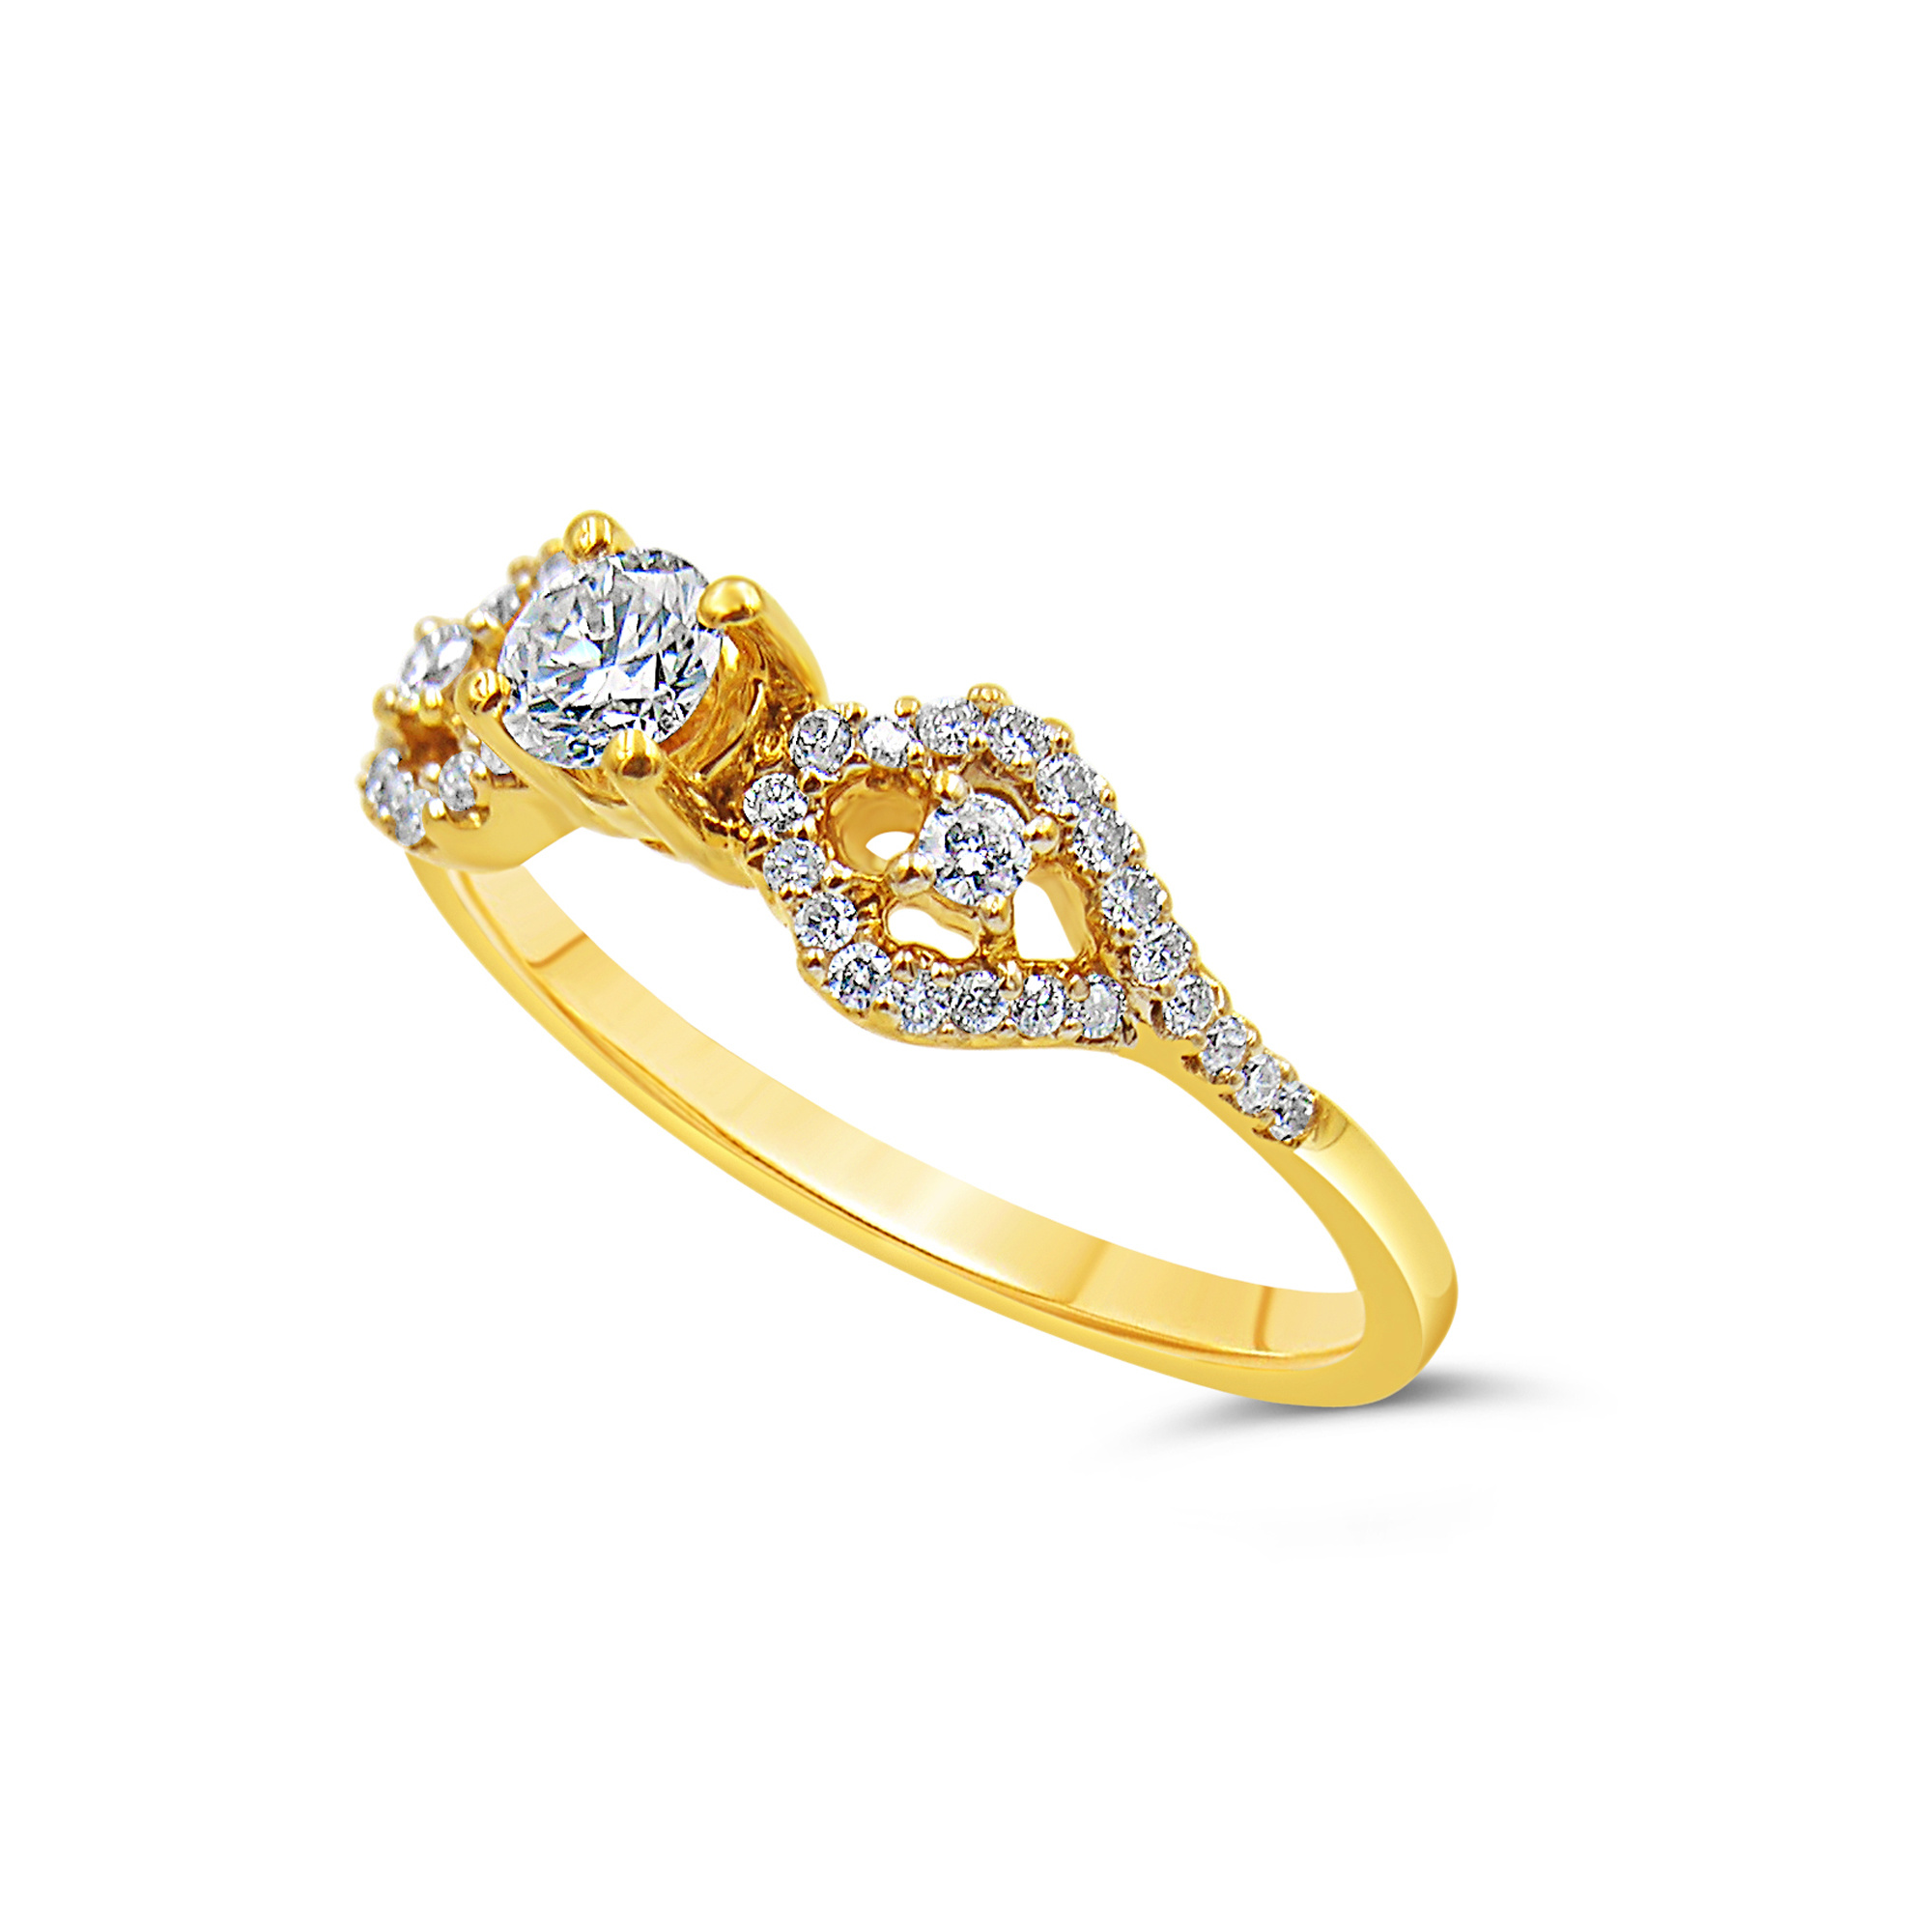 18kt yellow gold engagement ring with 0.51 ct diamonds